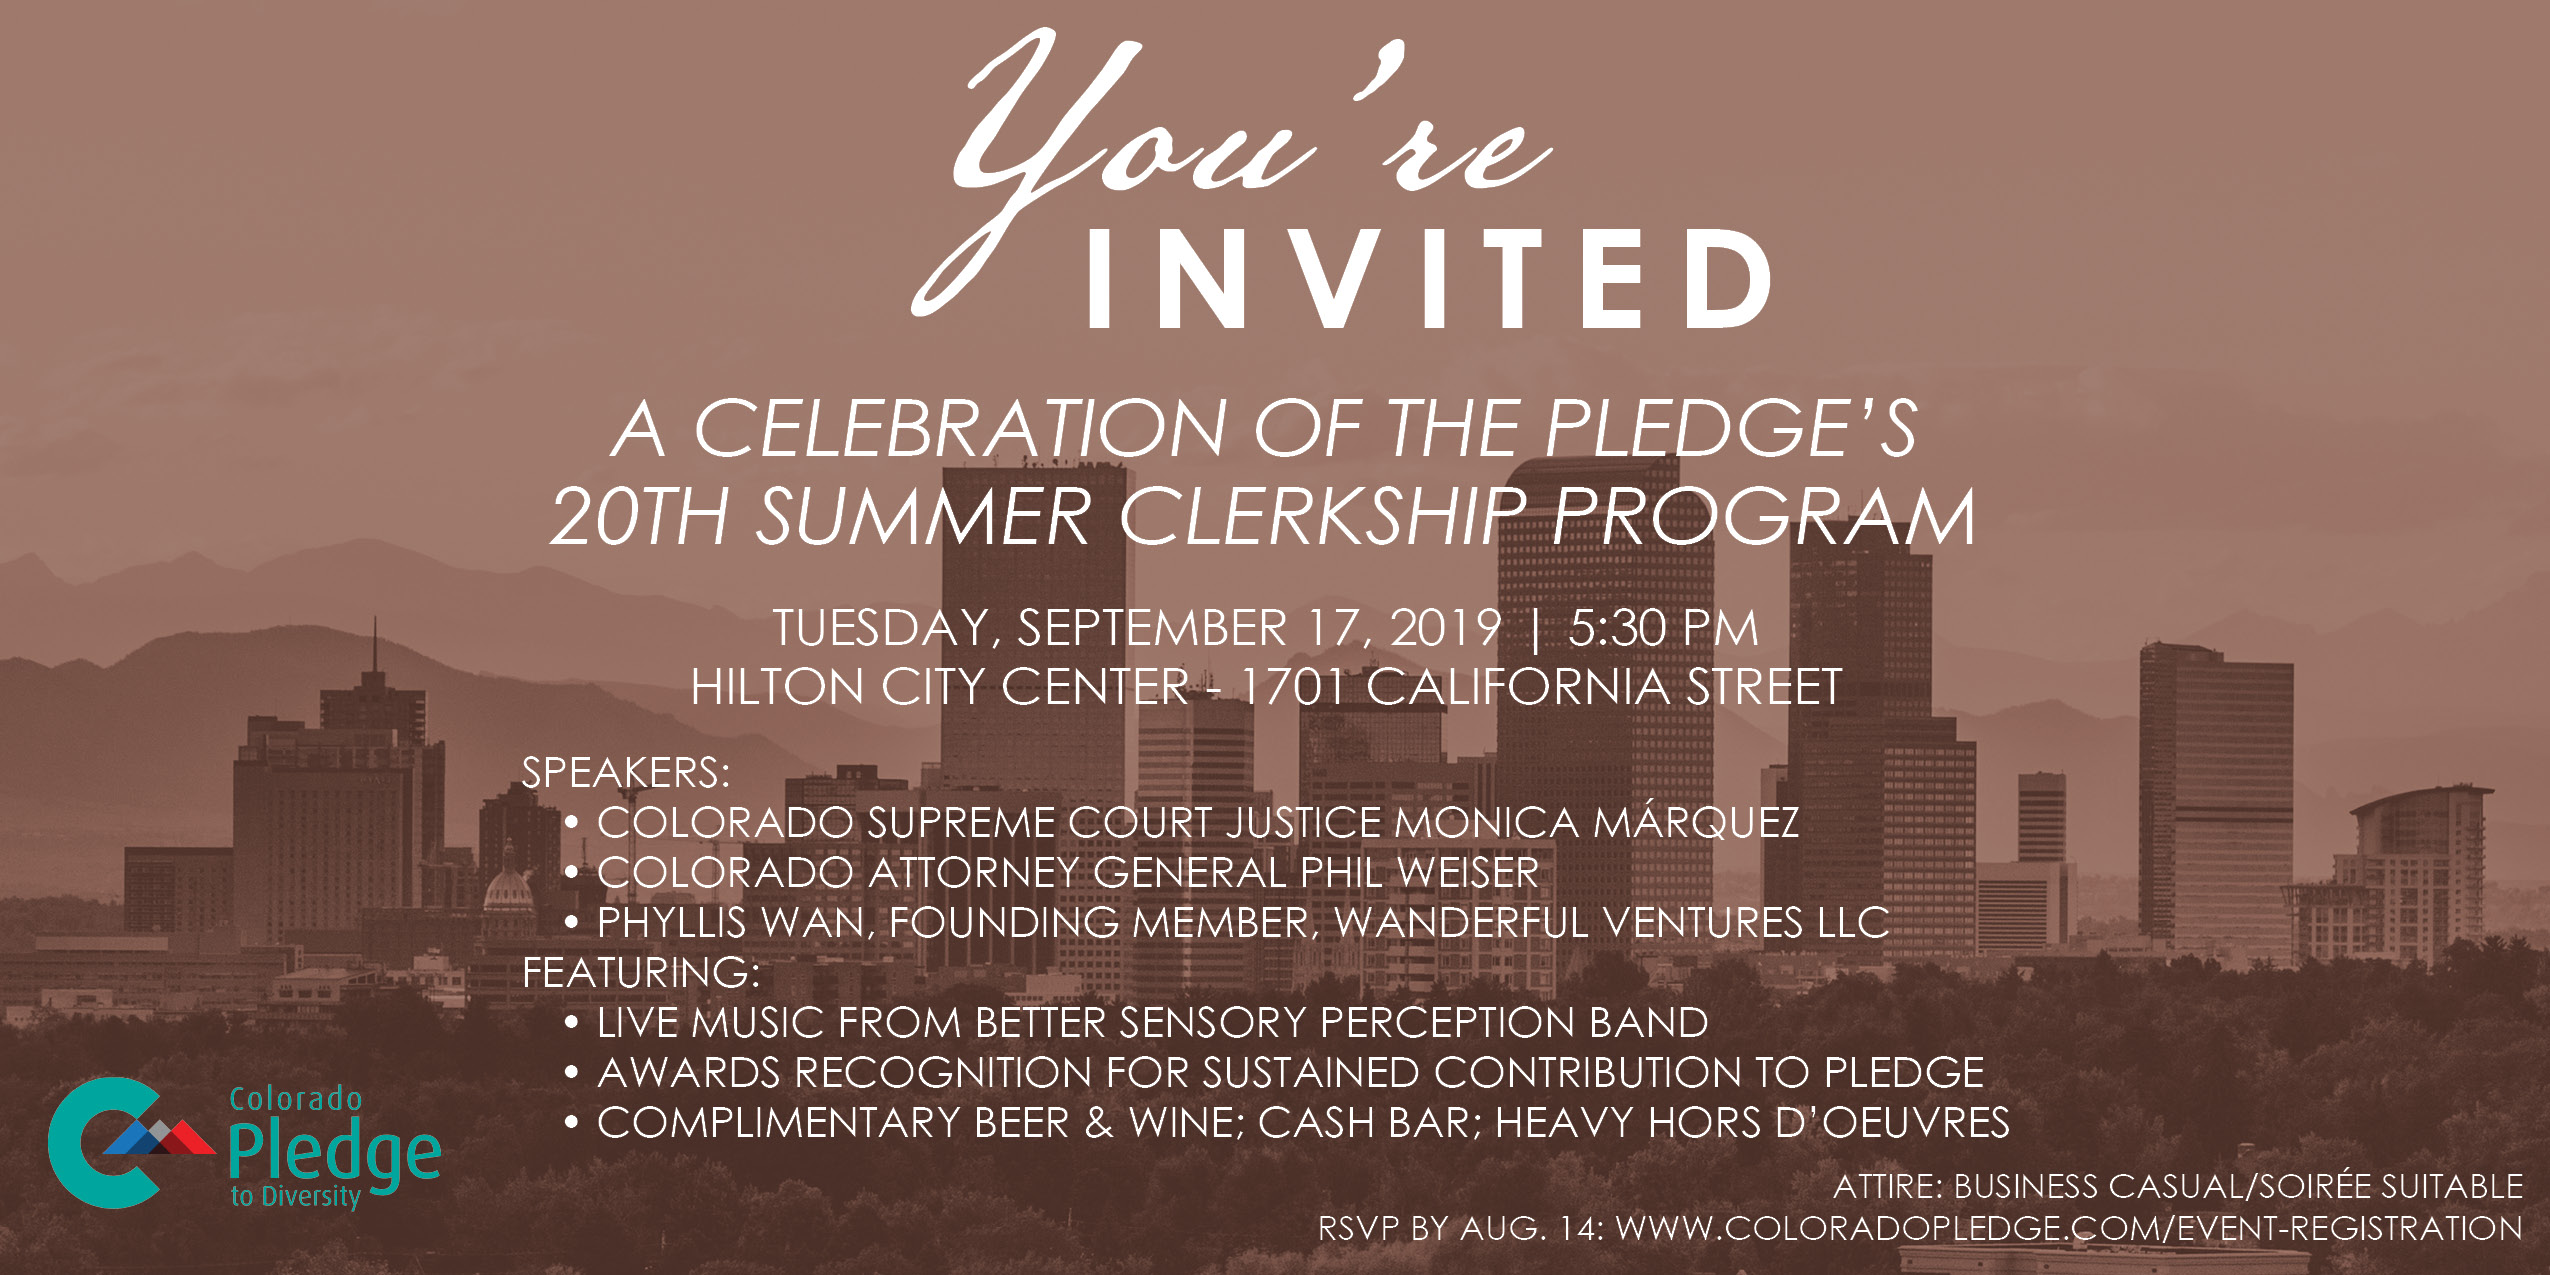 Colorado_Pledge_Invite_07_16_2019_Final